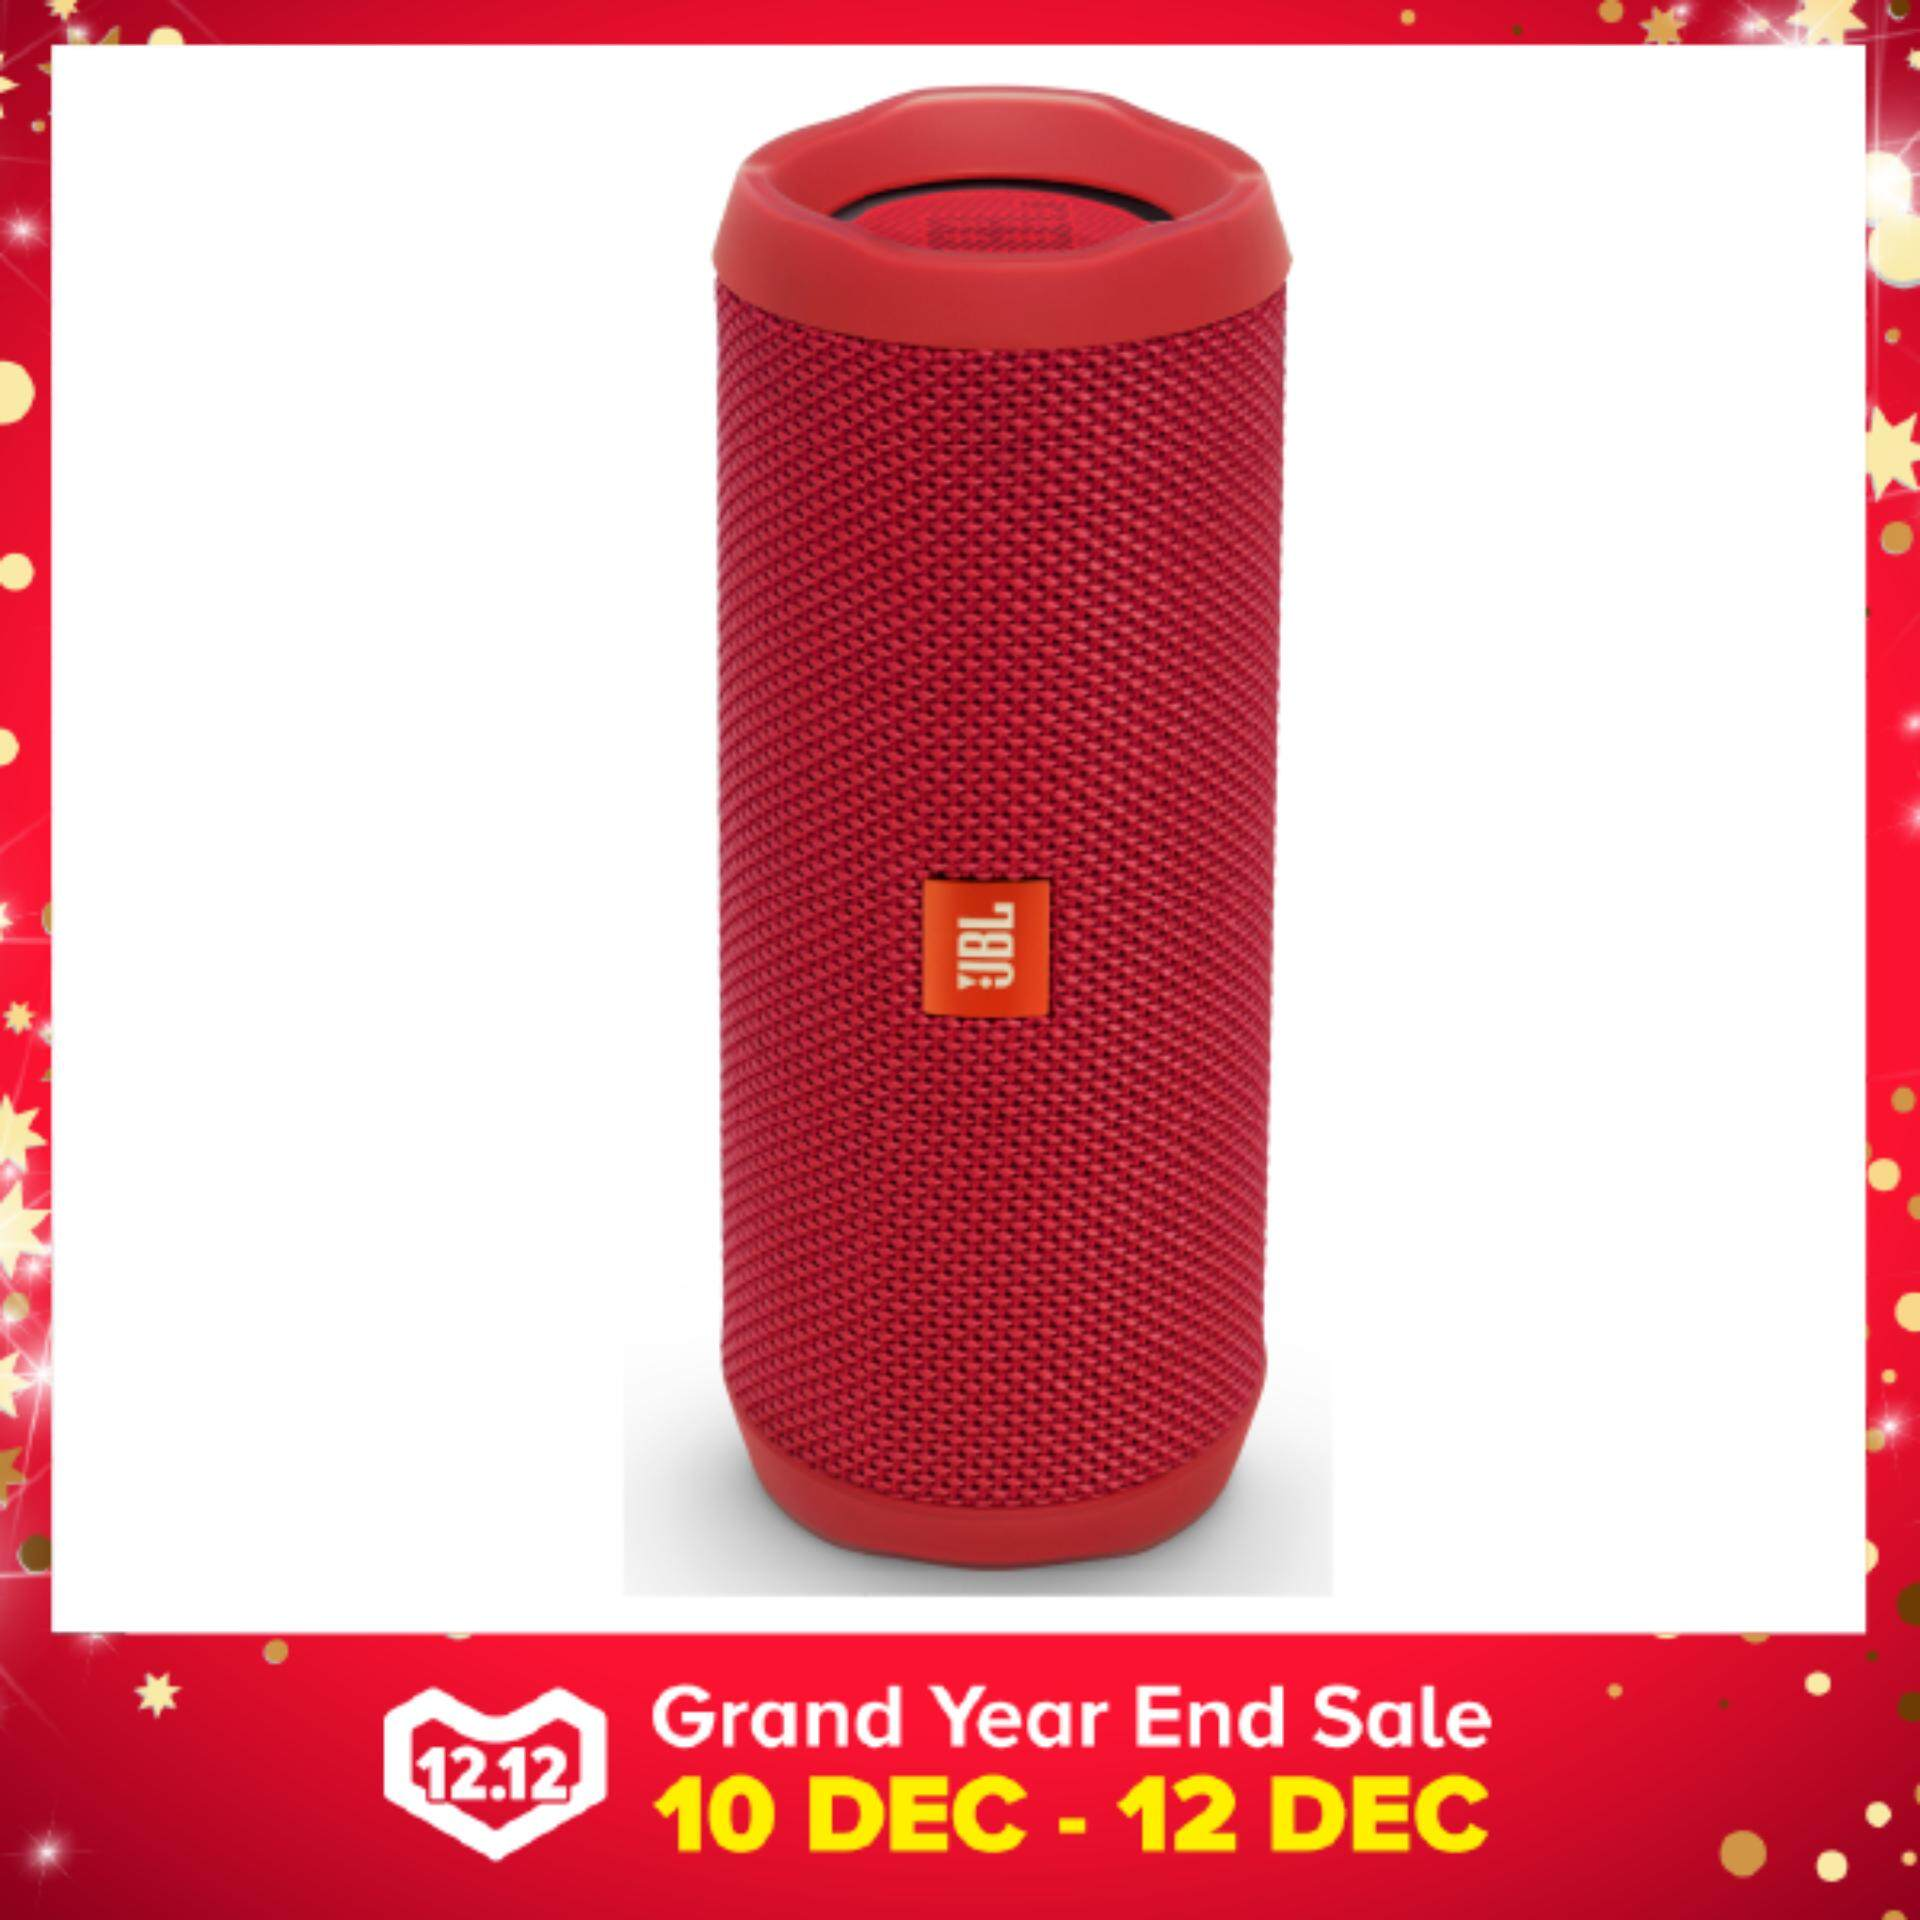 Jbl Portable Audio For The Best Prices In Malaysia Speaker Bluetooth Flip Iii Pink 4